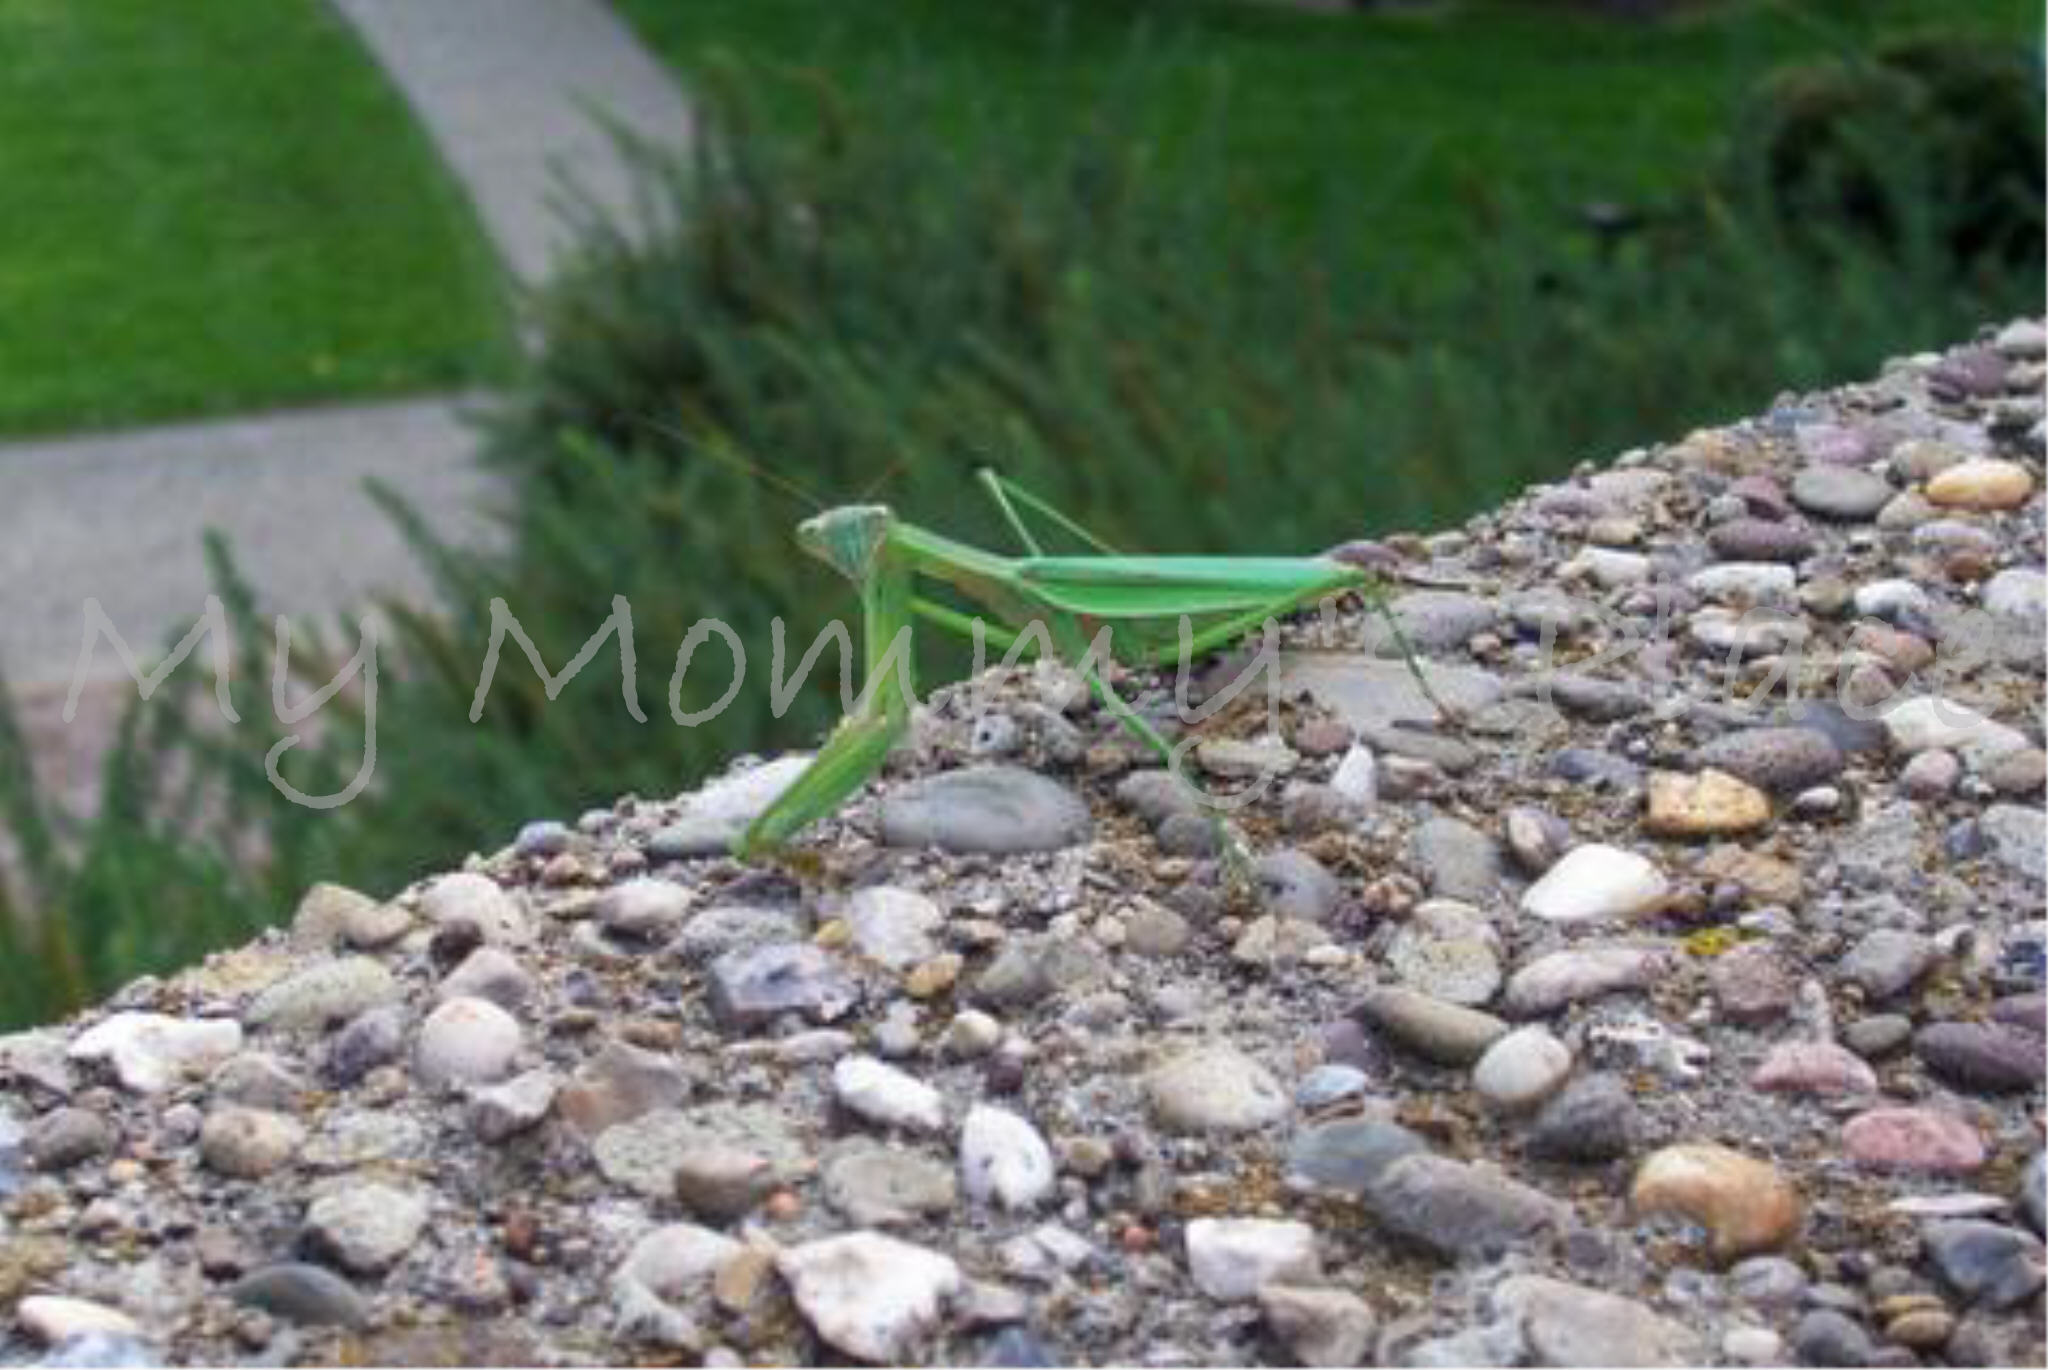 Praying Mantis at Oglebay